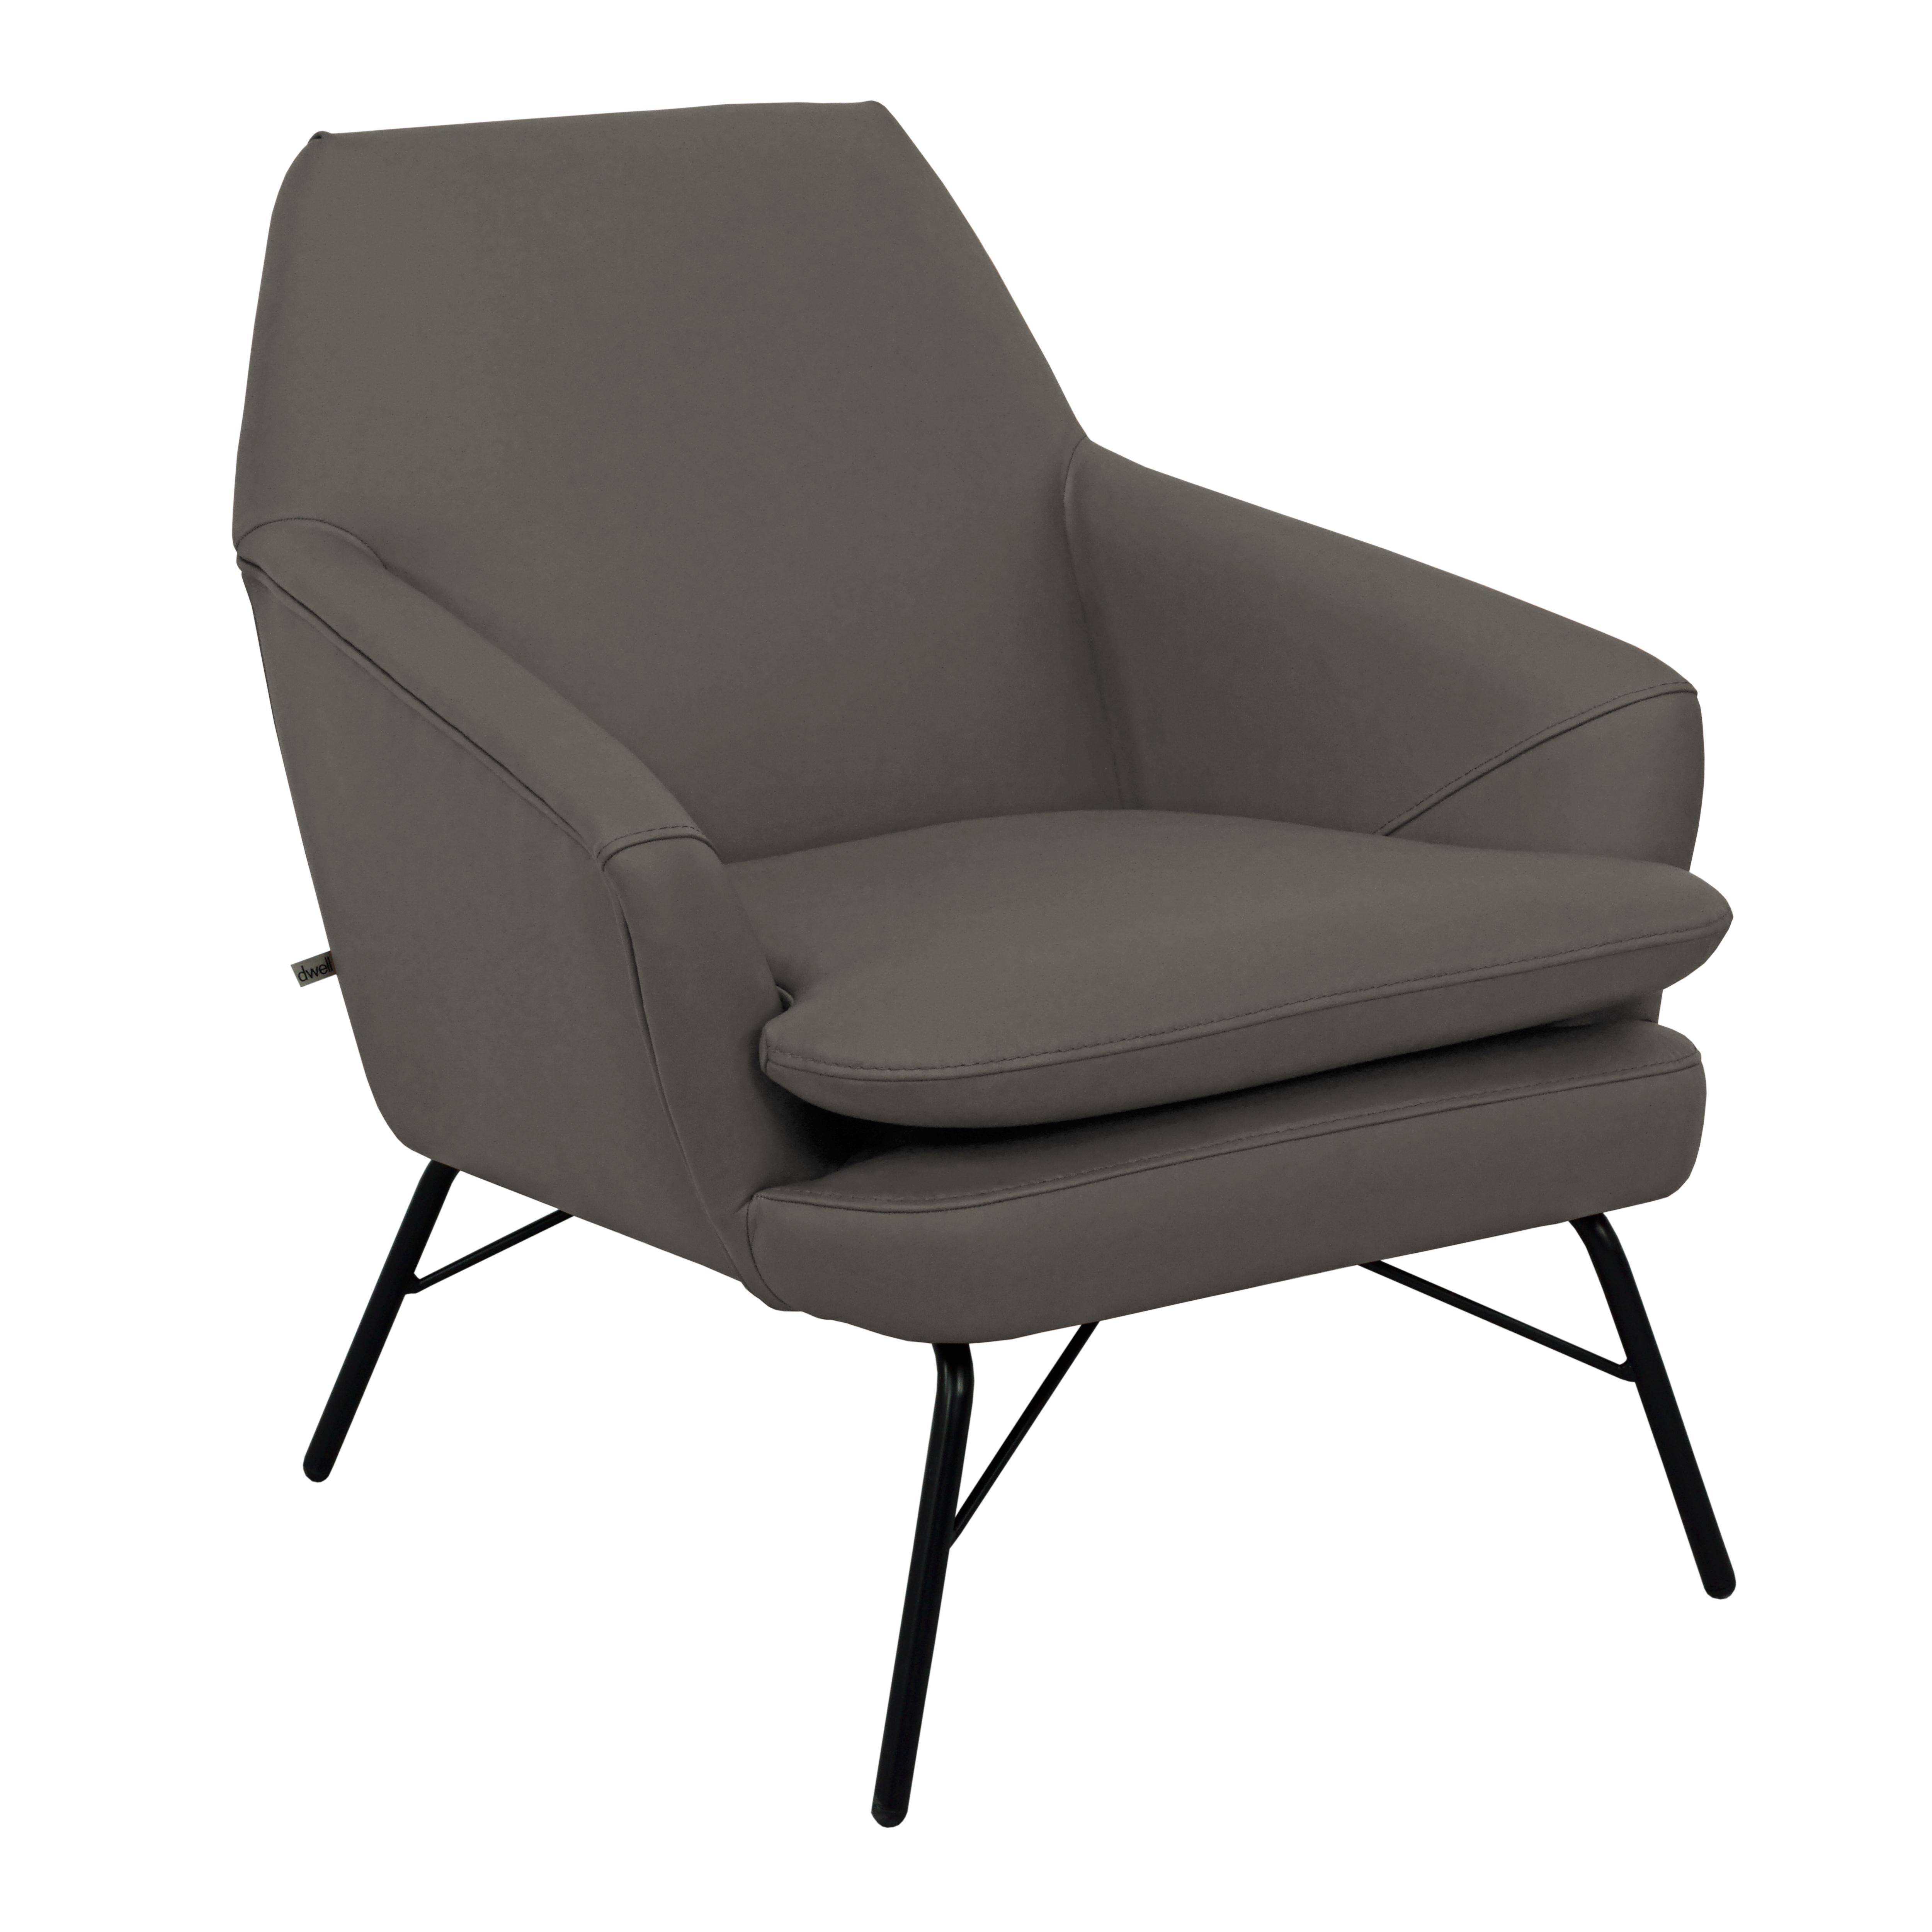 Acuta accent chair mollis leather dark grey